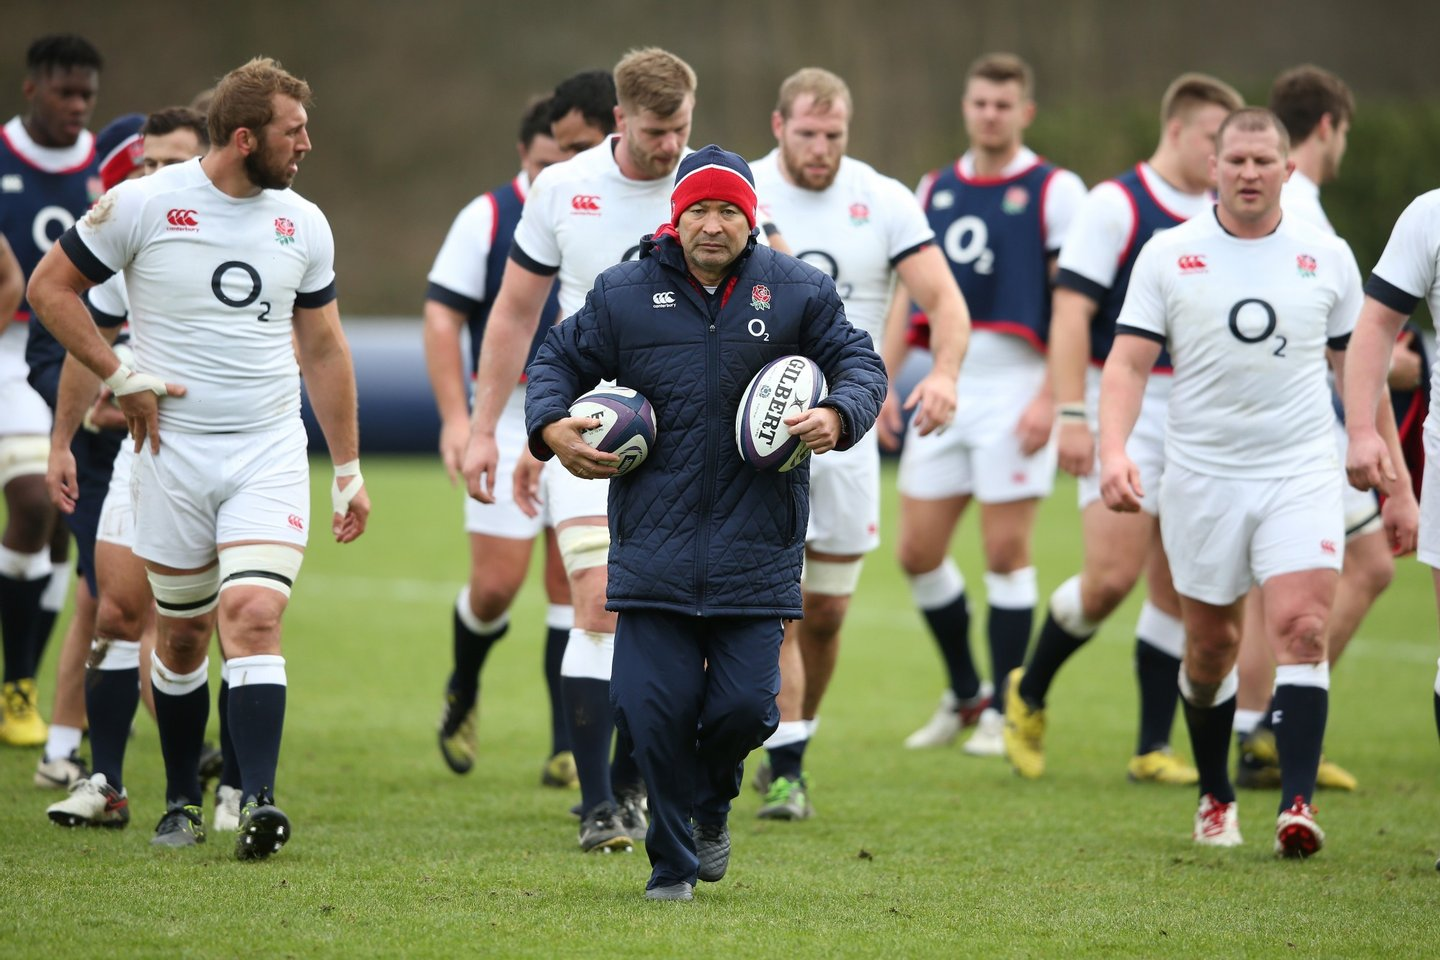 BAGSHOT, ENGLAND - FEBRUARY 04: Eddie Jones, the England head coach, looks on during the England training session held at Pennyhill Park on February 4, 2016 in Bagshot, England. (Photo by David Rogers/Getty Images)